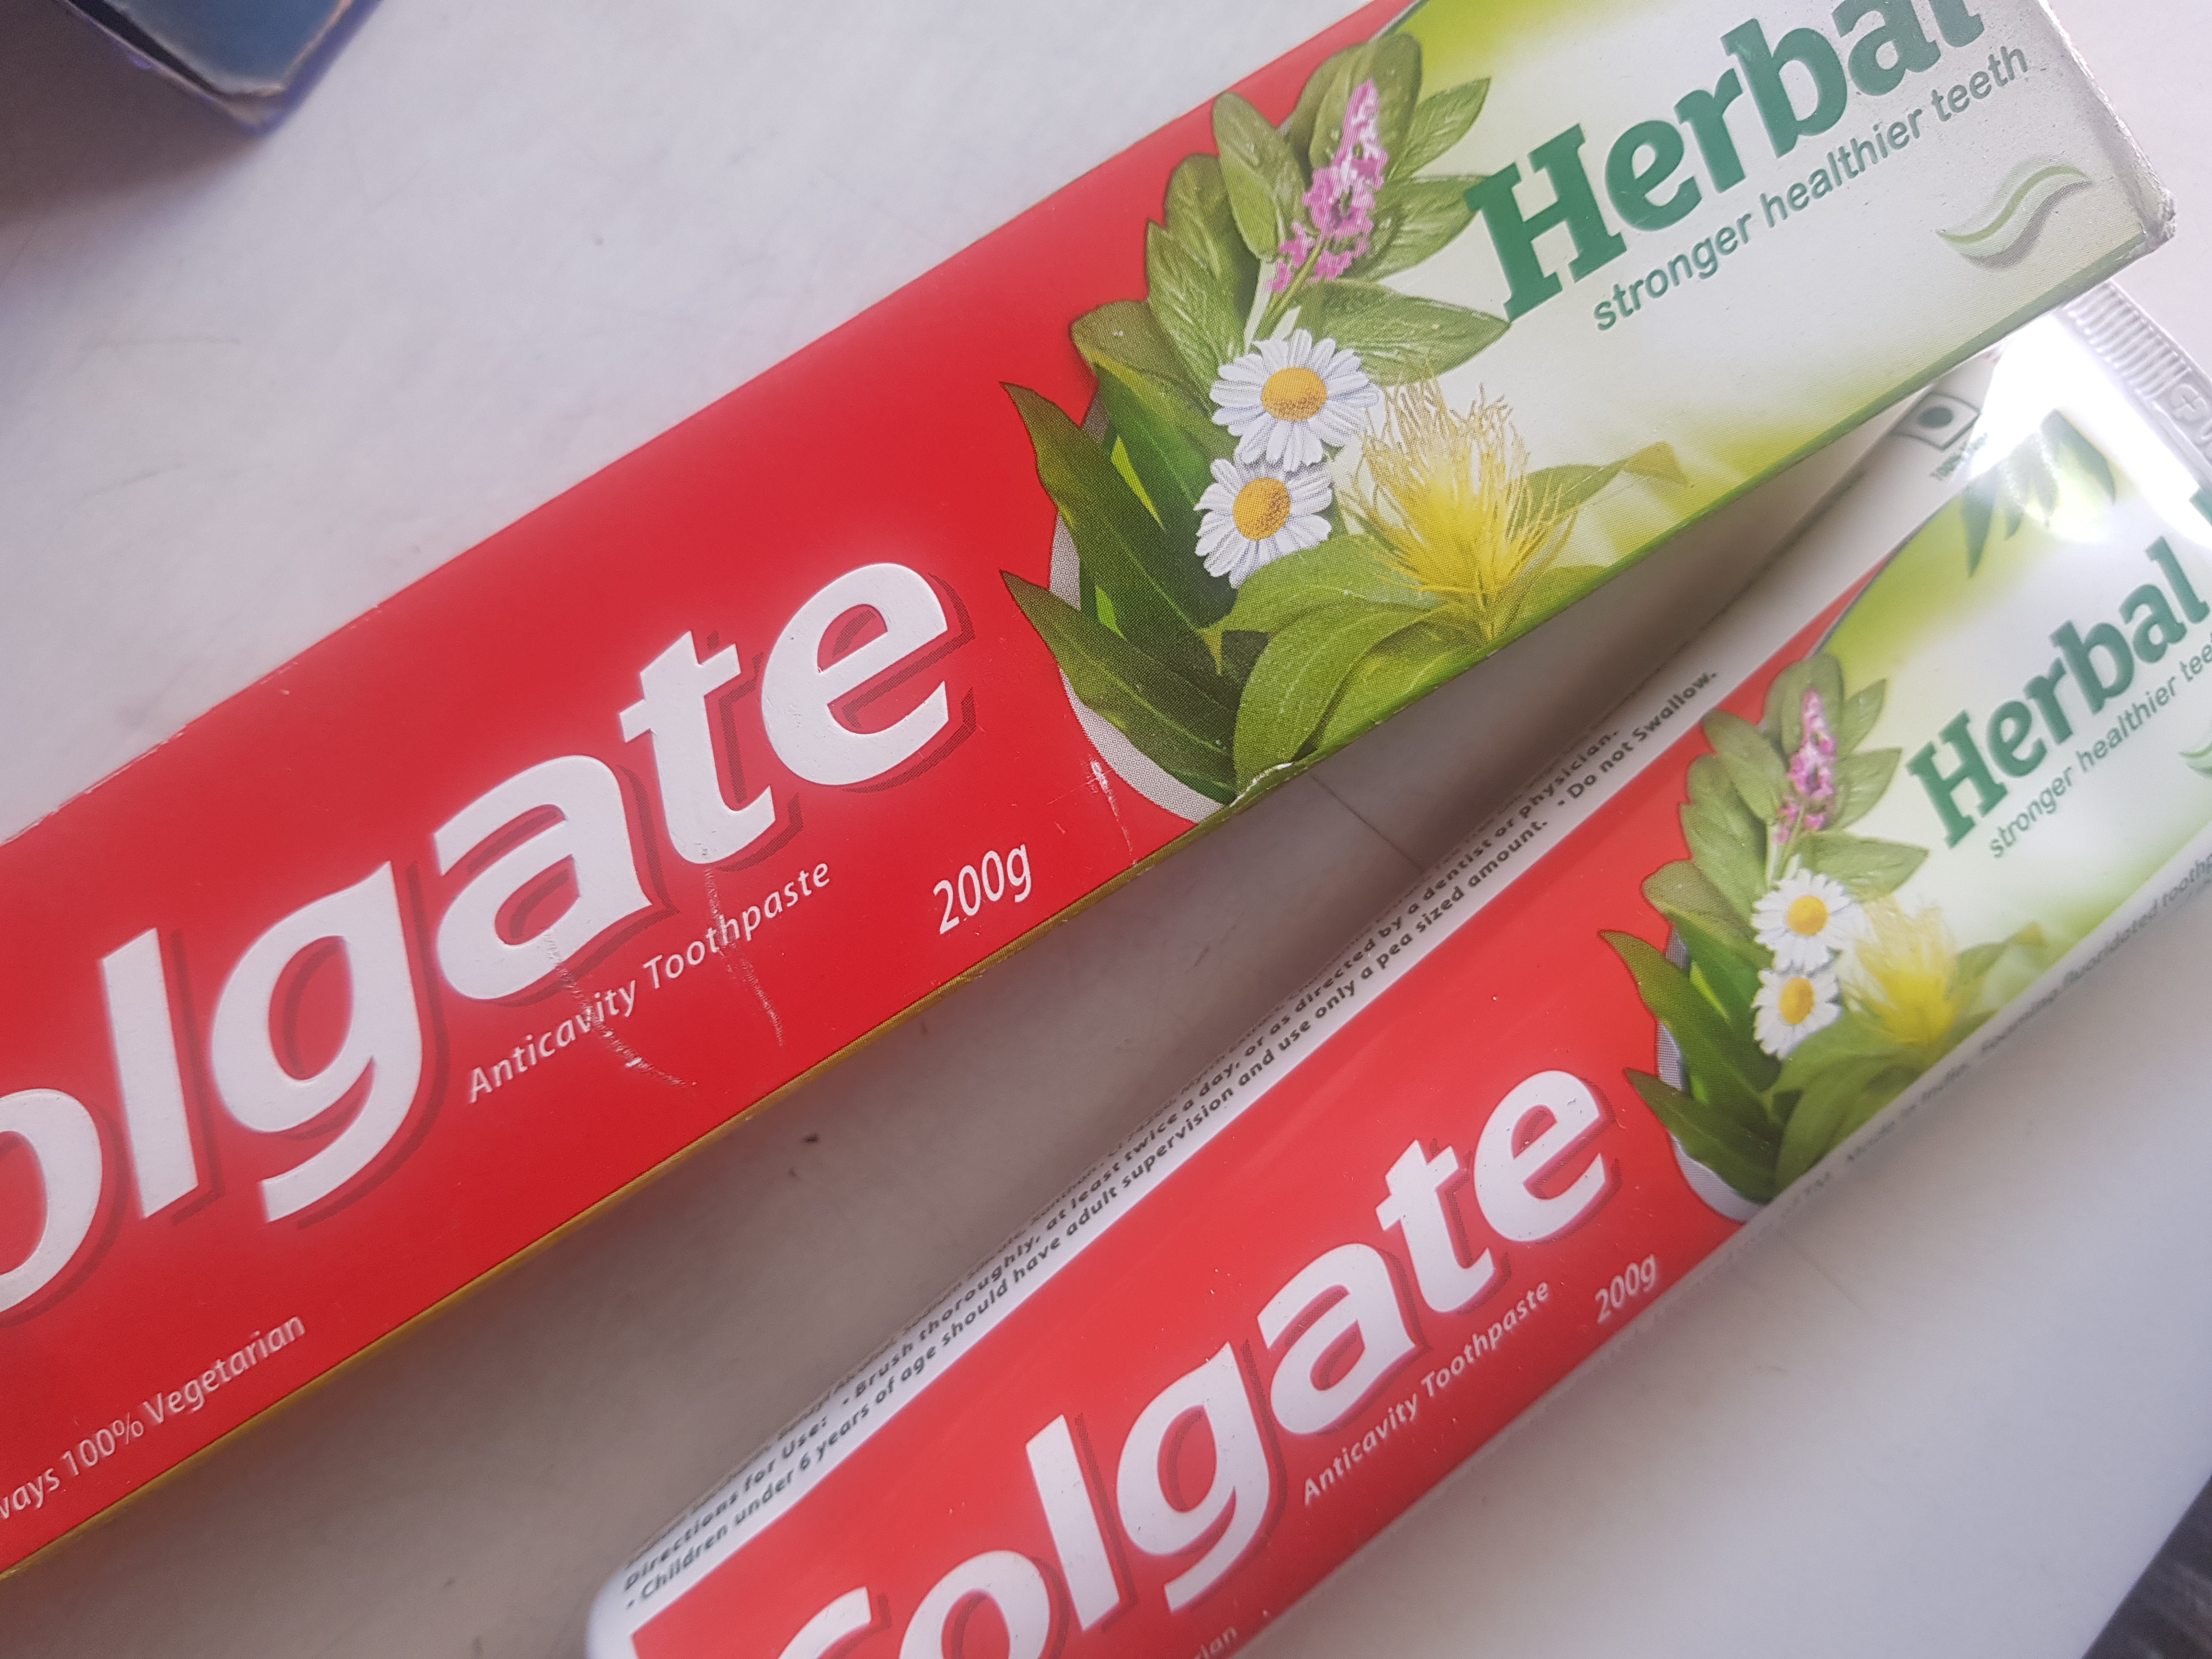 Colgate Herbal Toothpaste-Goodness of Herbs for your Teeth!-By poonam_kakkar